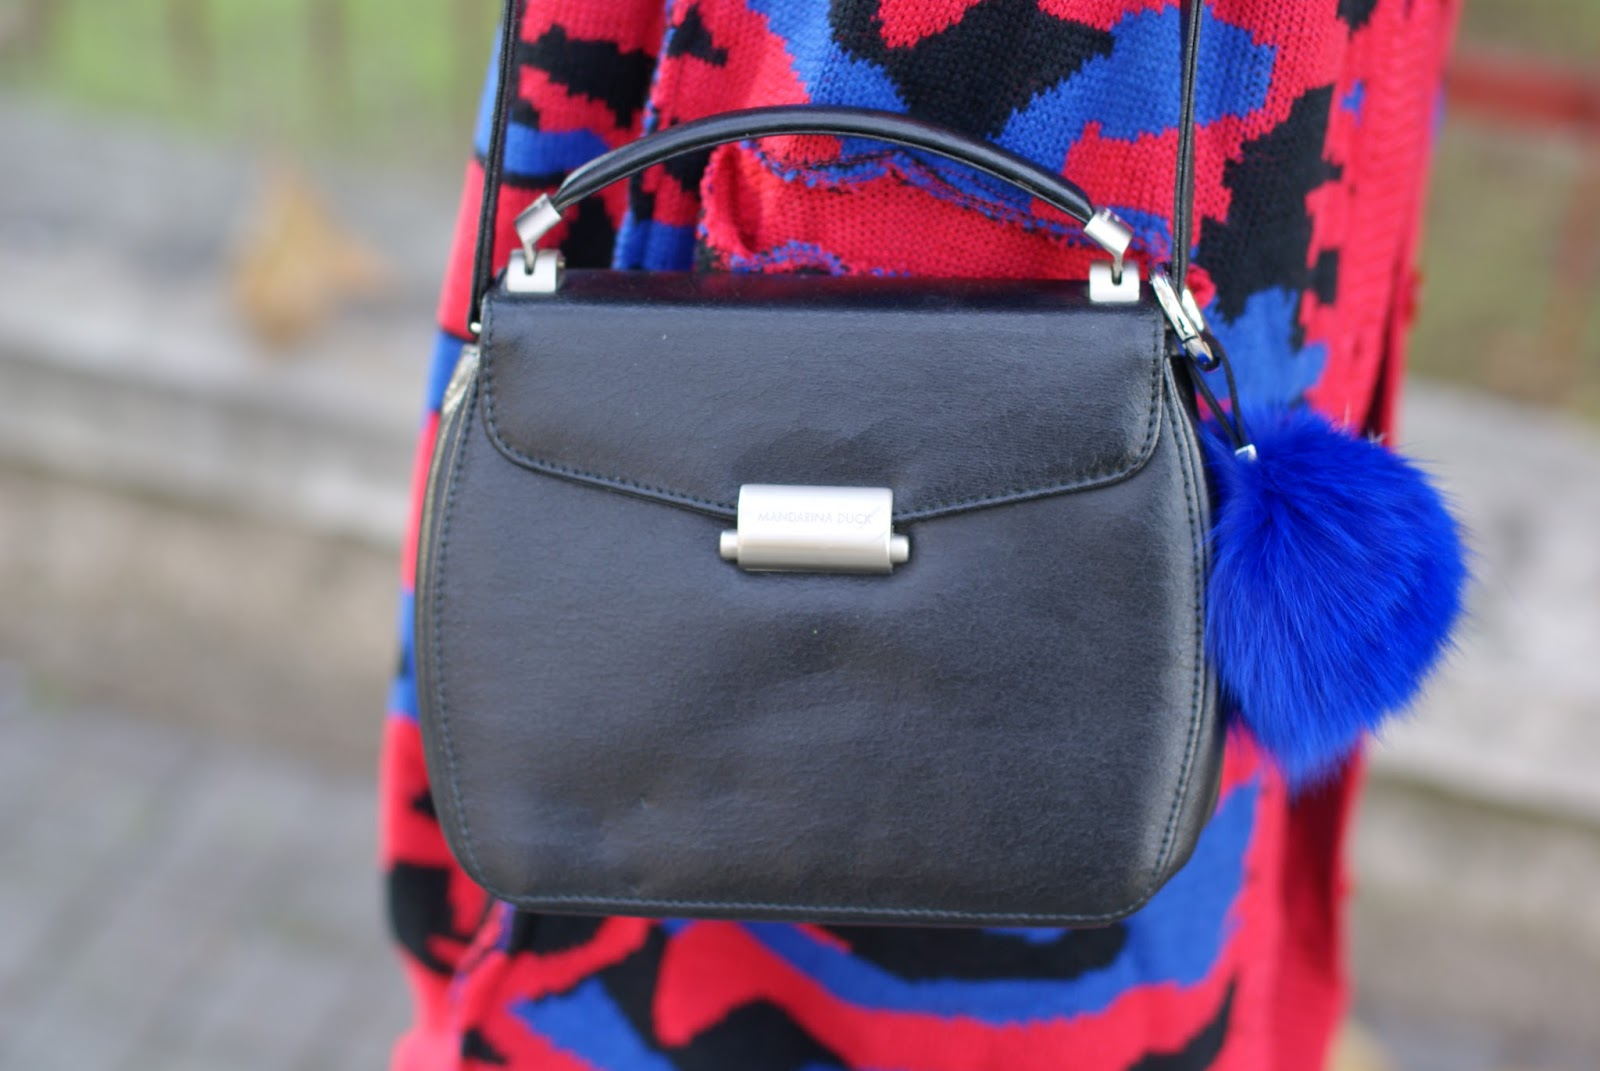 Mandarina Duck bag and furry charms on Fashion and Cookies fashion blog